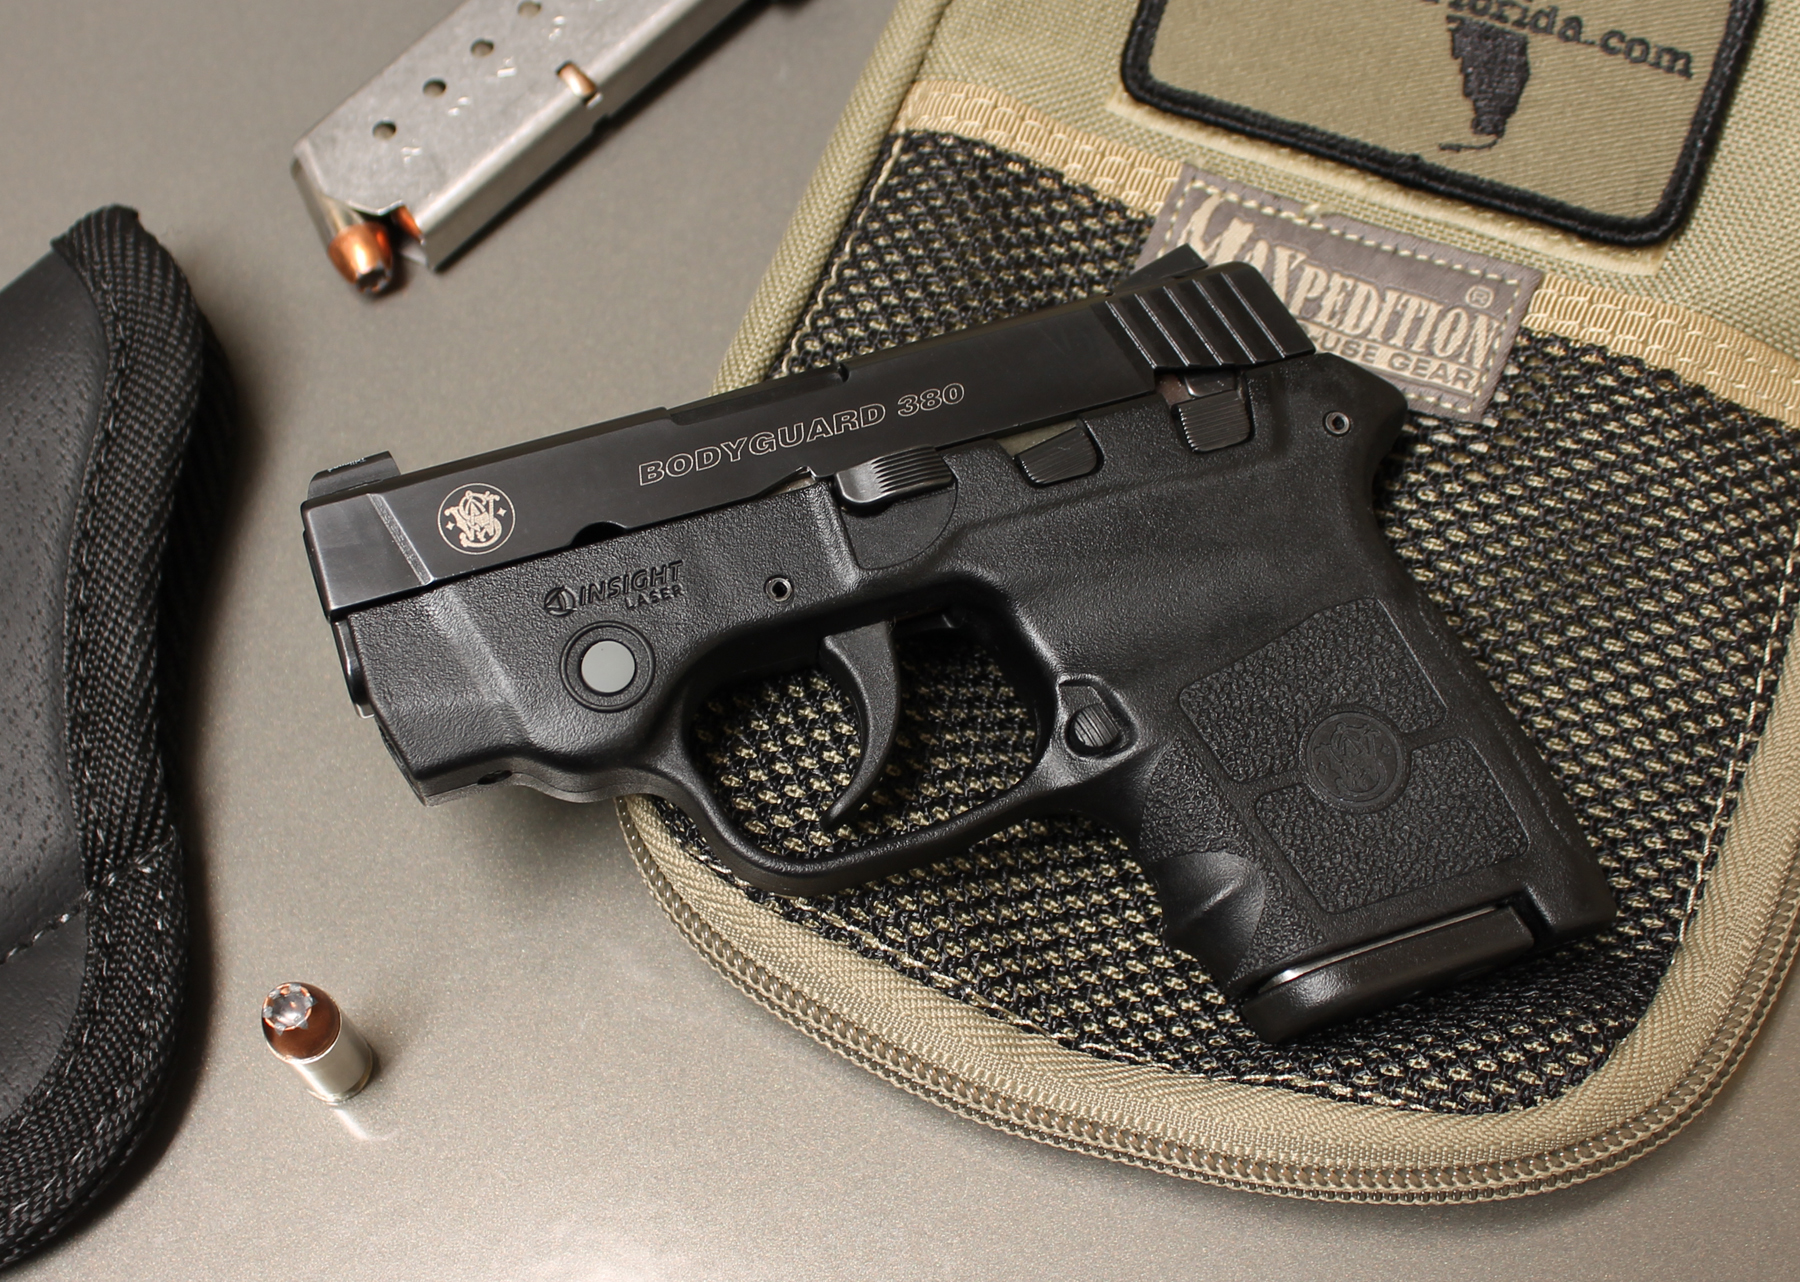 Smith & Wesson Bodyguard 380 XS Sight